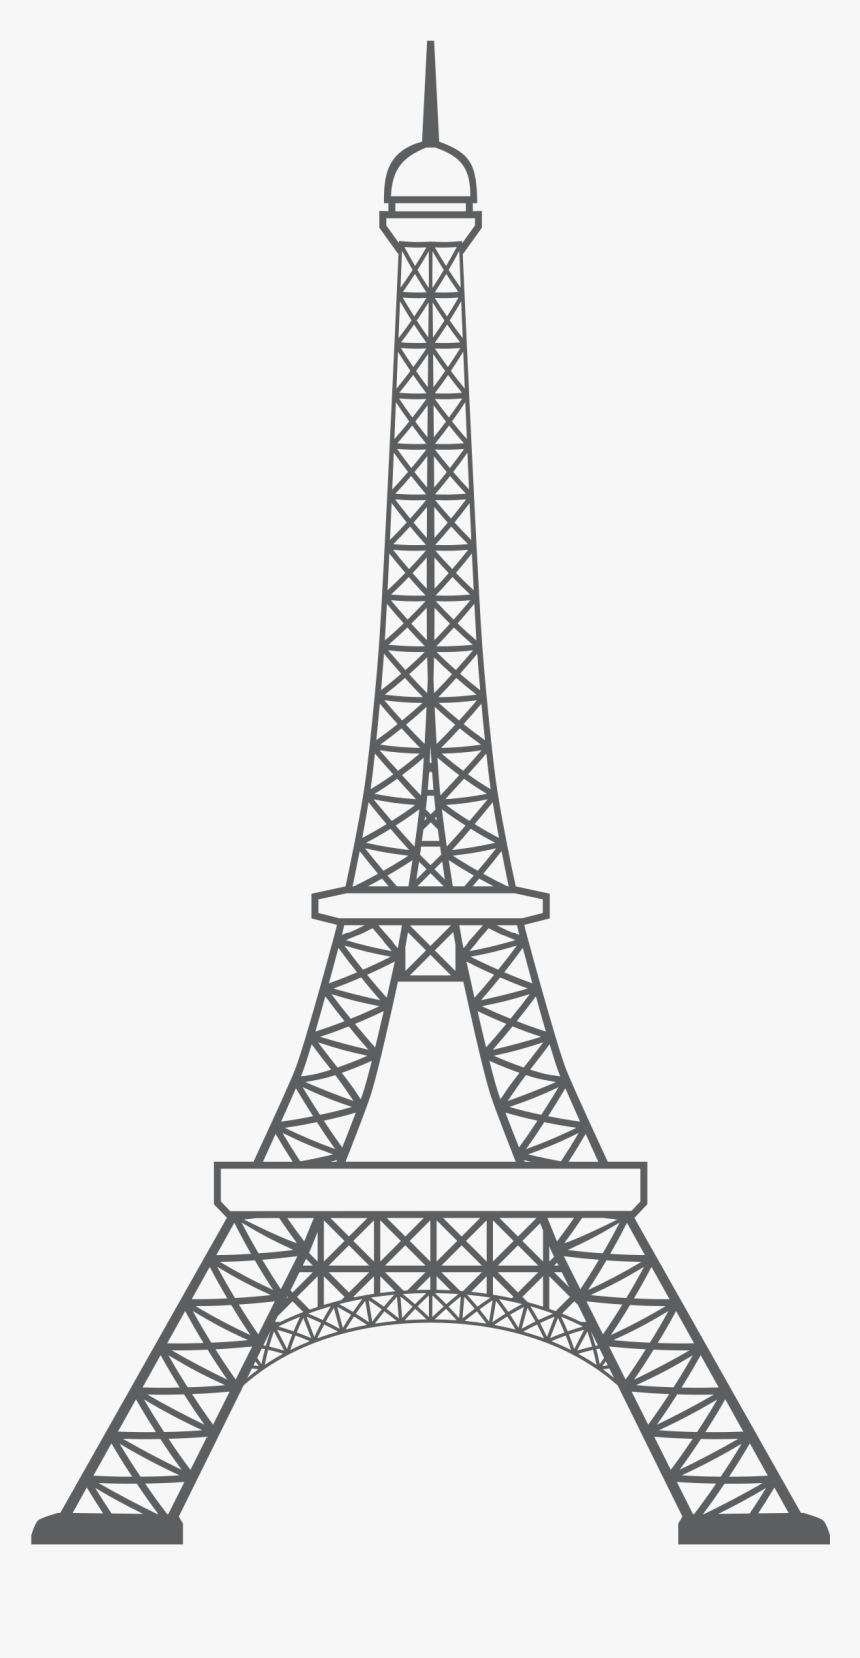 eifell tower drawing french clipart sketch eiffel tower french sketch eiffel tower drawing eifell